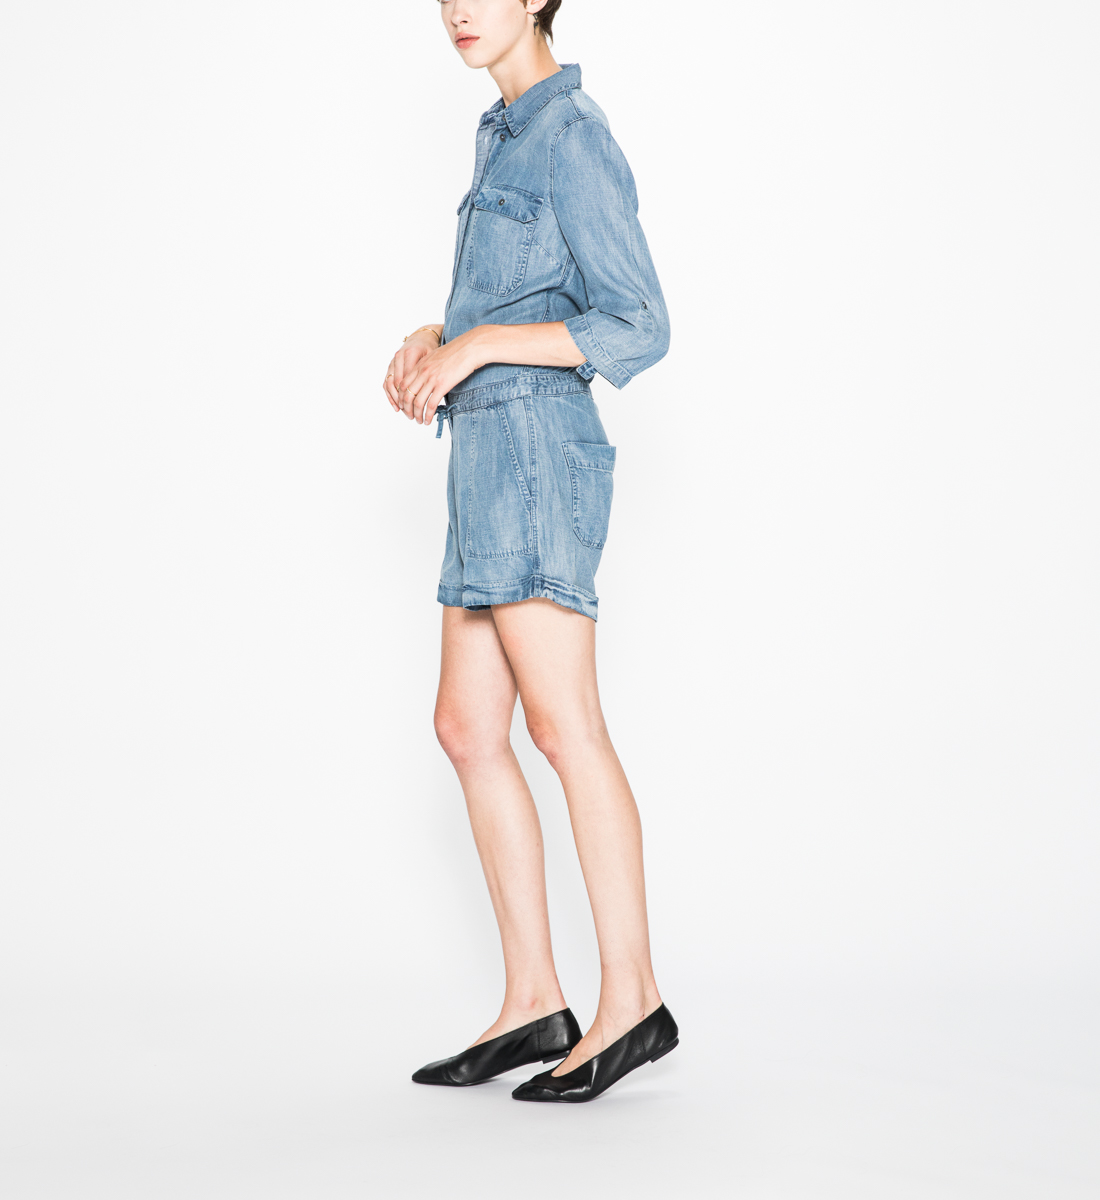 Shea - Denim Romper, , hi-res